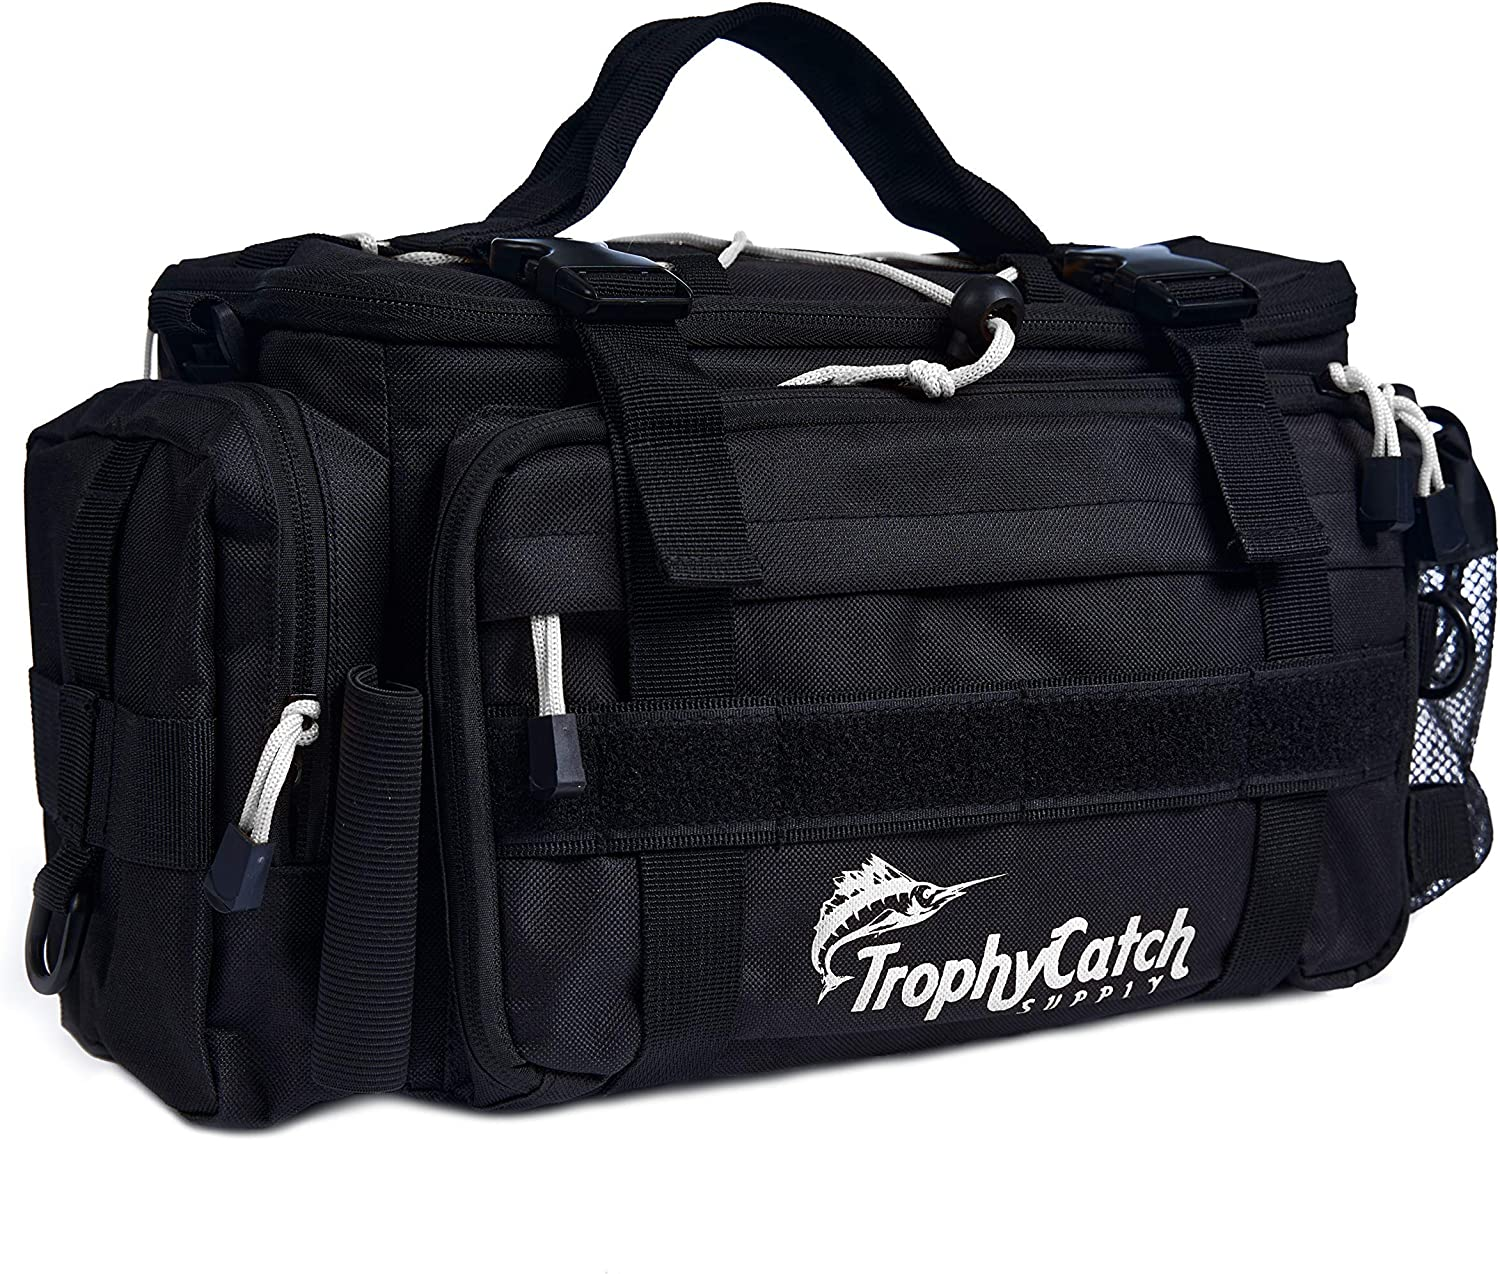 Ranking TOP16 TrophyCatch Luxury Fishing Tackle Bag with Resist Water Trays Storage